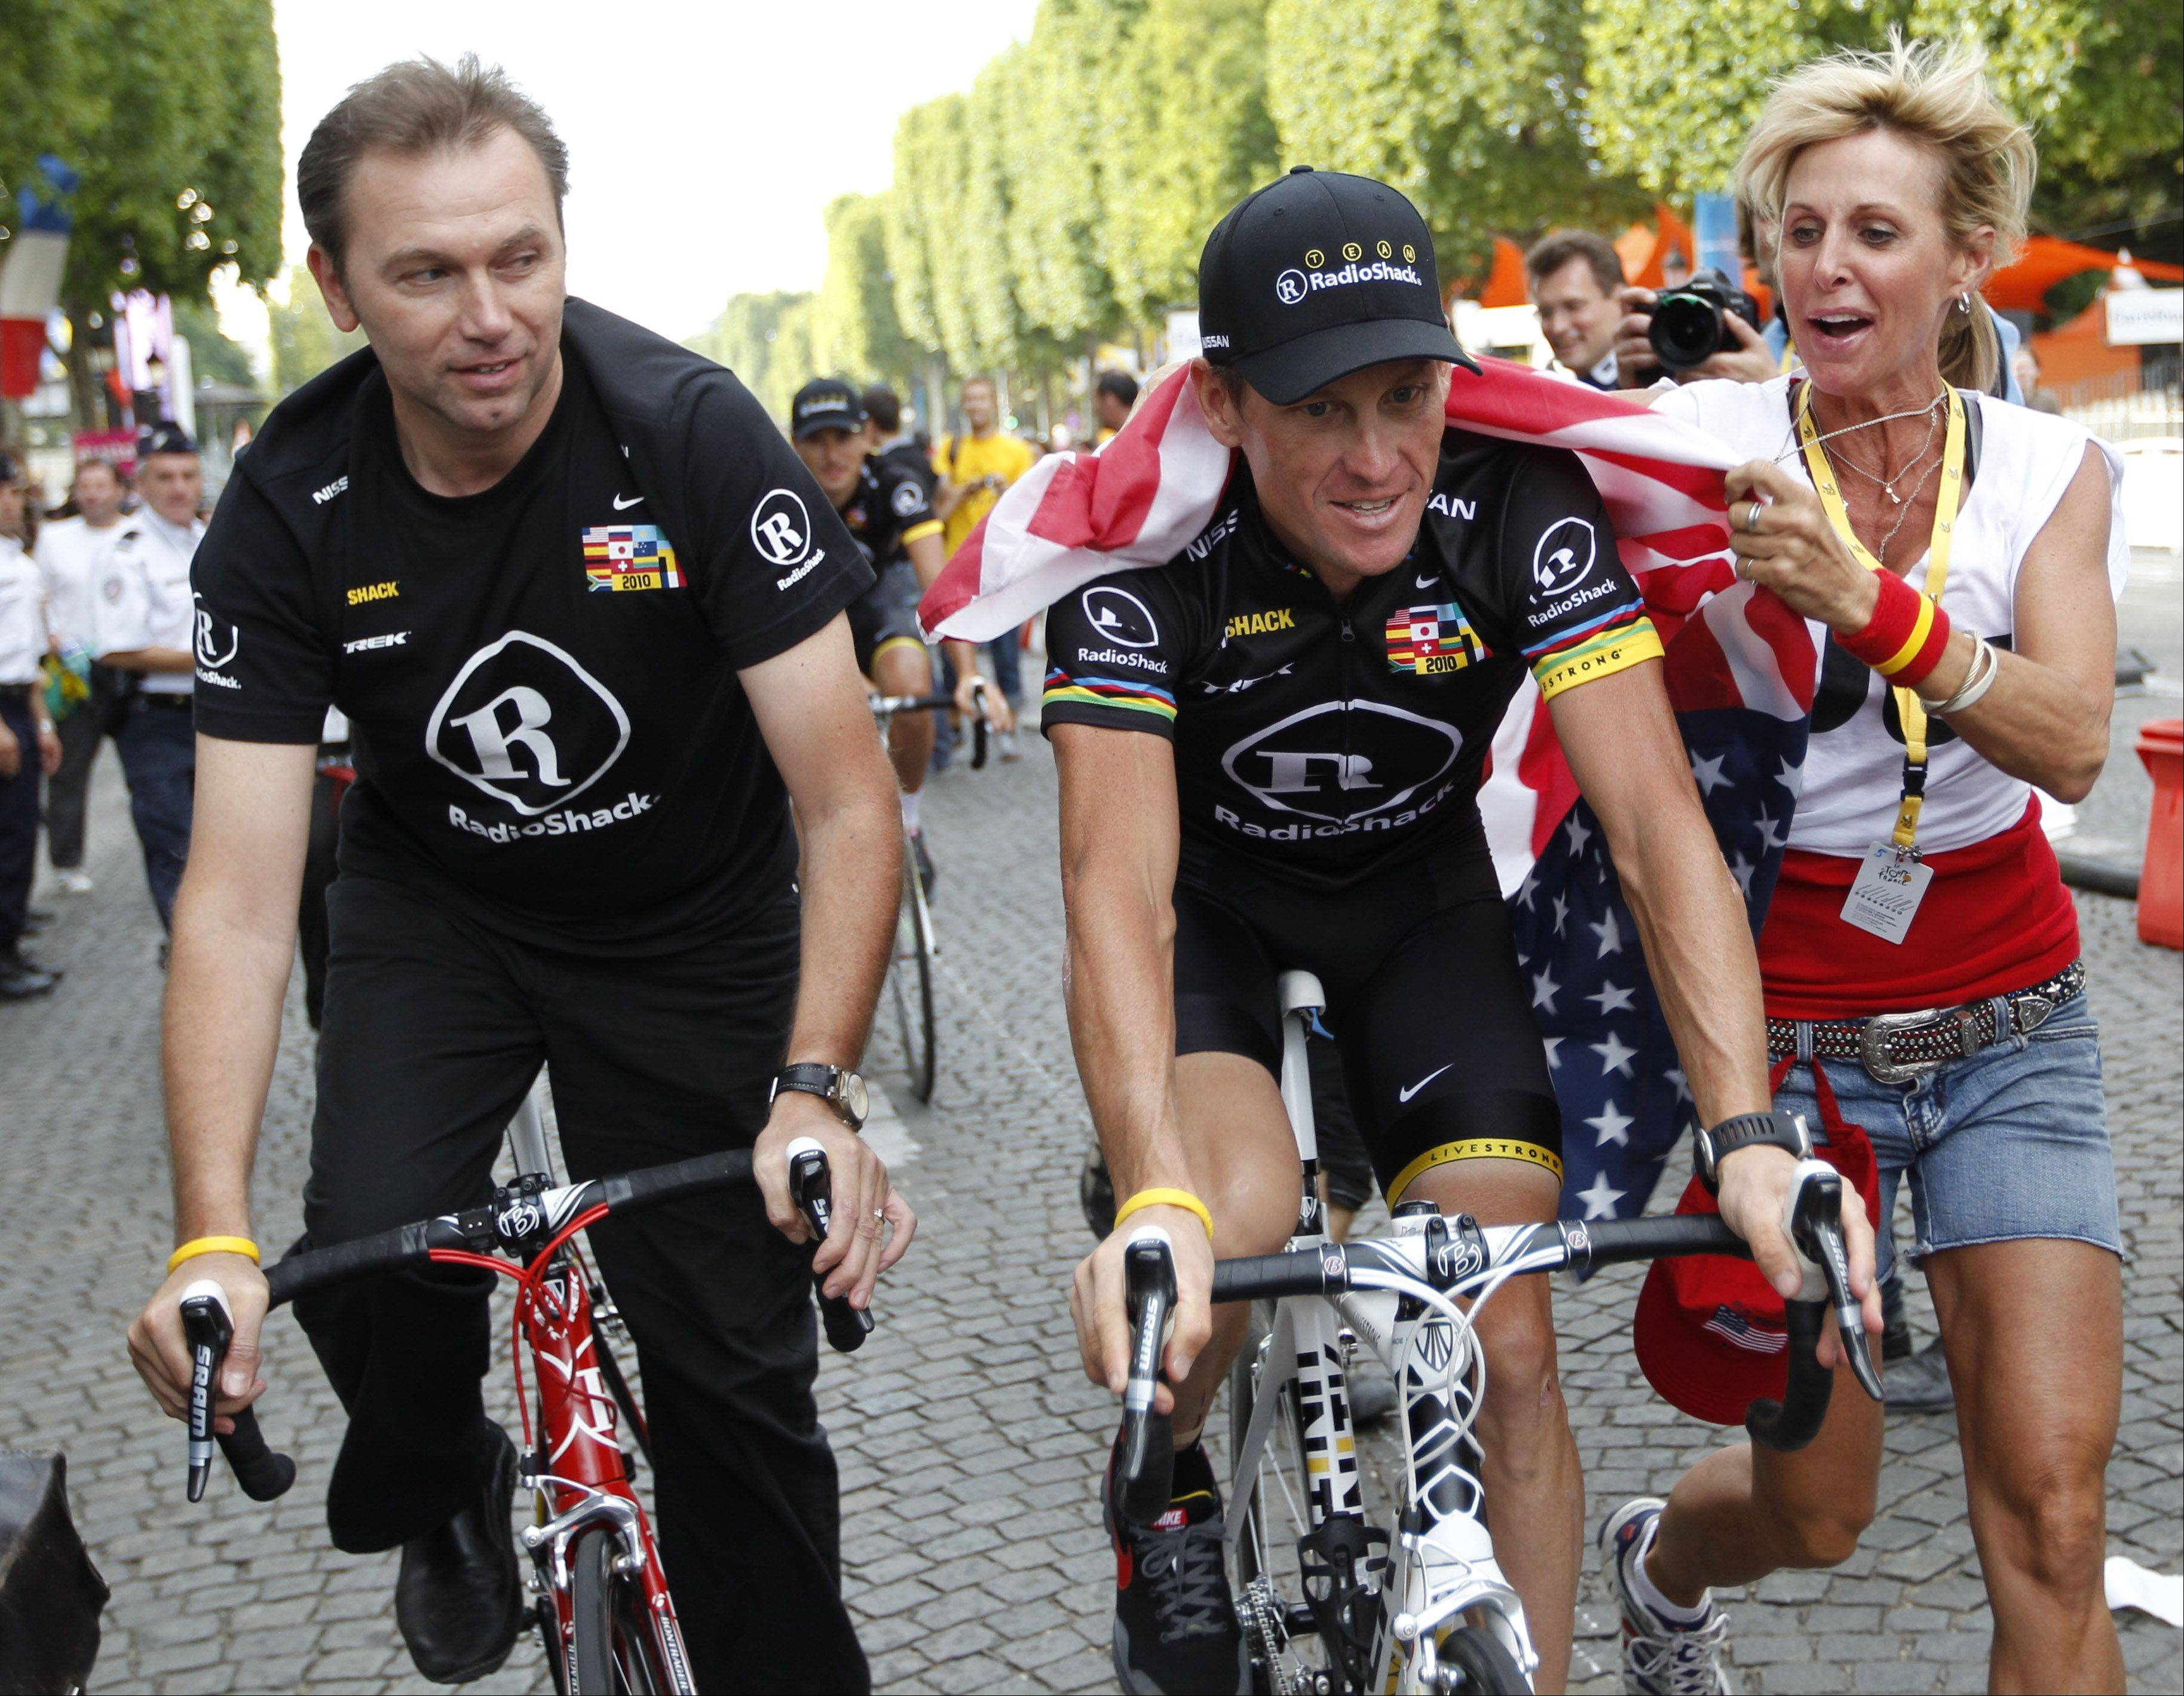 A fan with an American flag runs alongside Lance Armstrong of the US and his Radioshack cycling team director Johan Bruyneel of Belgium during the parade after the 20th and last stage of the Tour de France cycling race over 102.5 kilometers (63.7 miles) with start in Longjumeau and finish in Paris, France, Sunday, July 25, 2010.